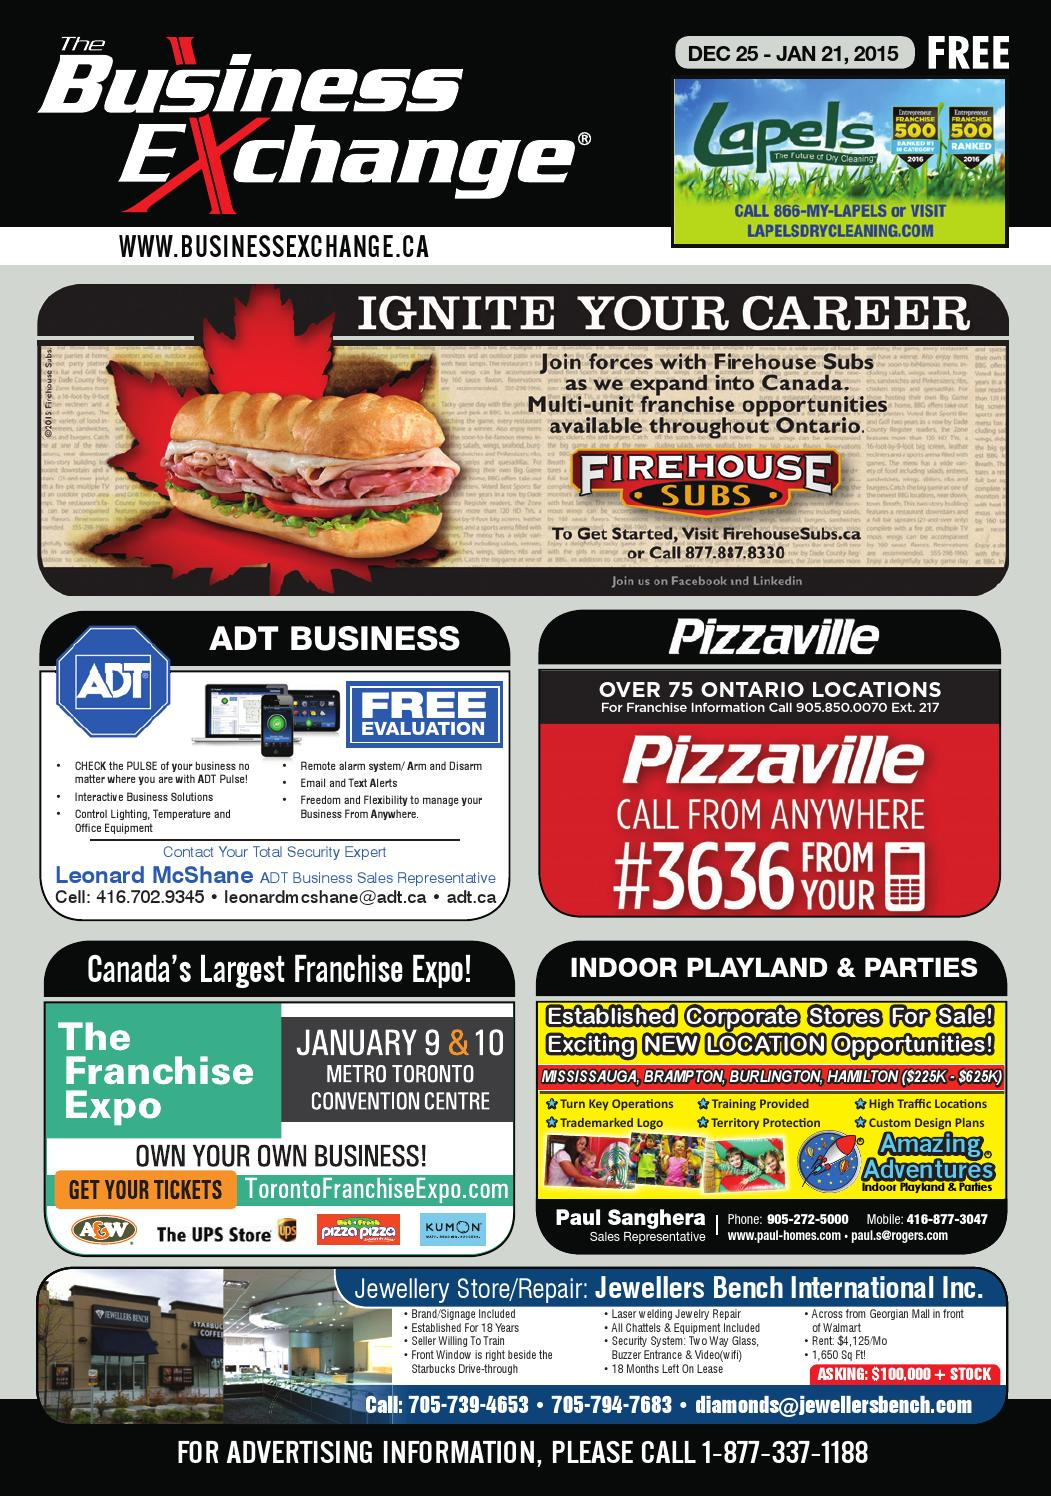 The Business Exchange Magazine On Edition Dec 25 2016 By